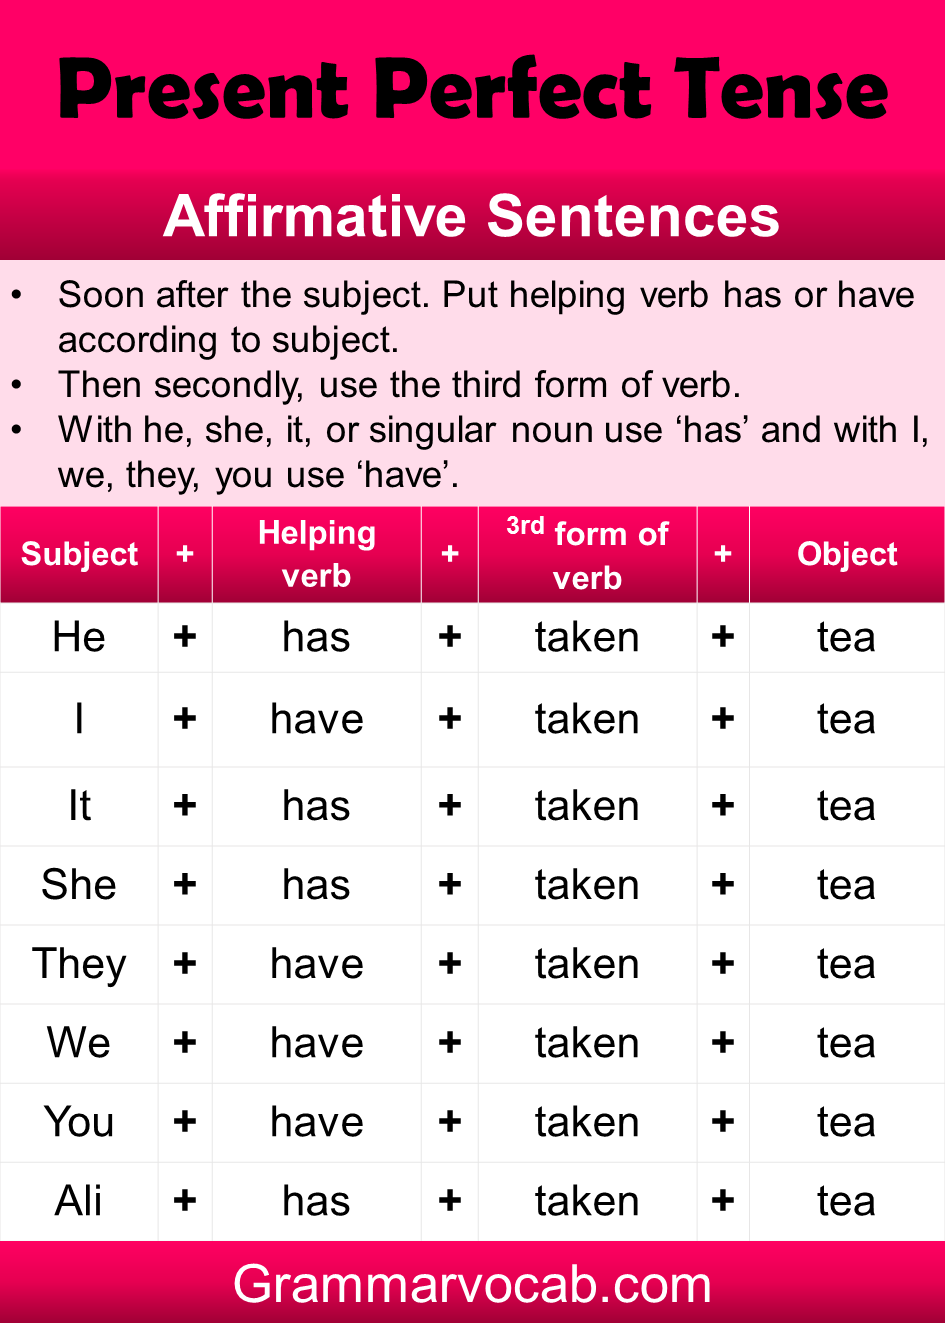 Present Perfect Tense with Example